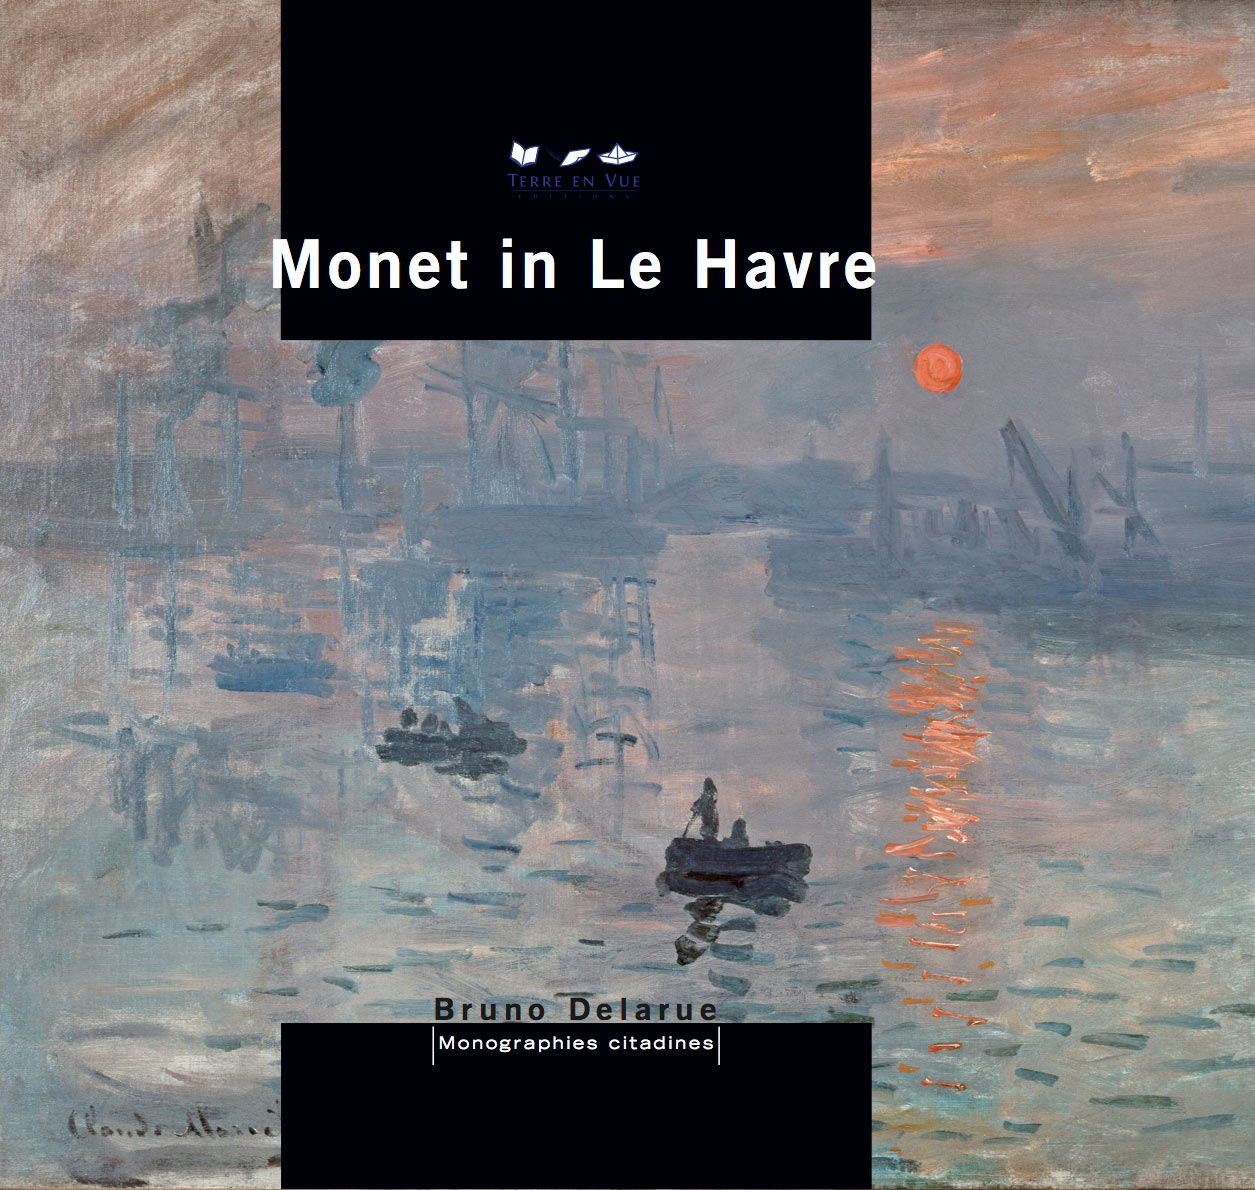 Monet in Le Havre